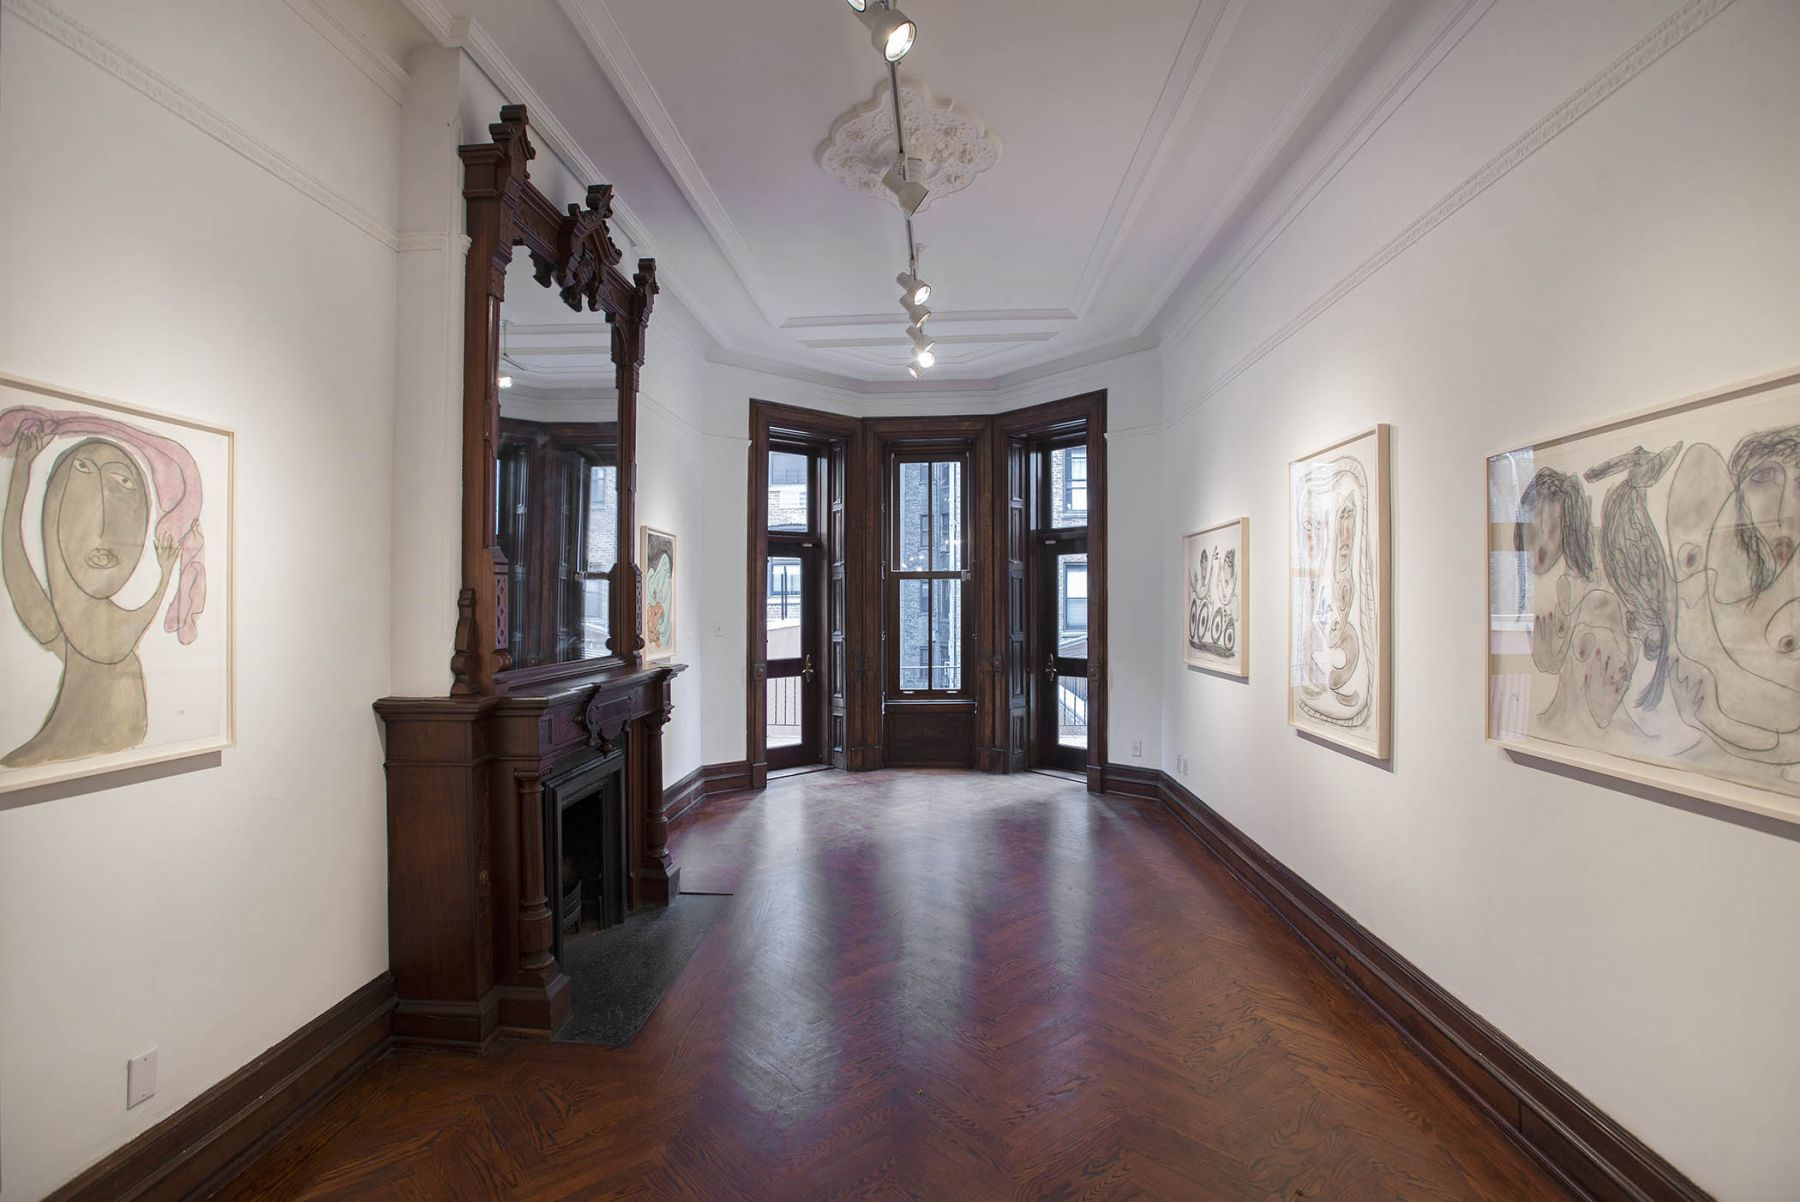 Works on Paper(Installation View), 118 East 64th Street, Uptown, 2015